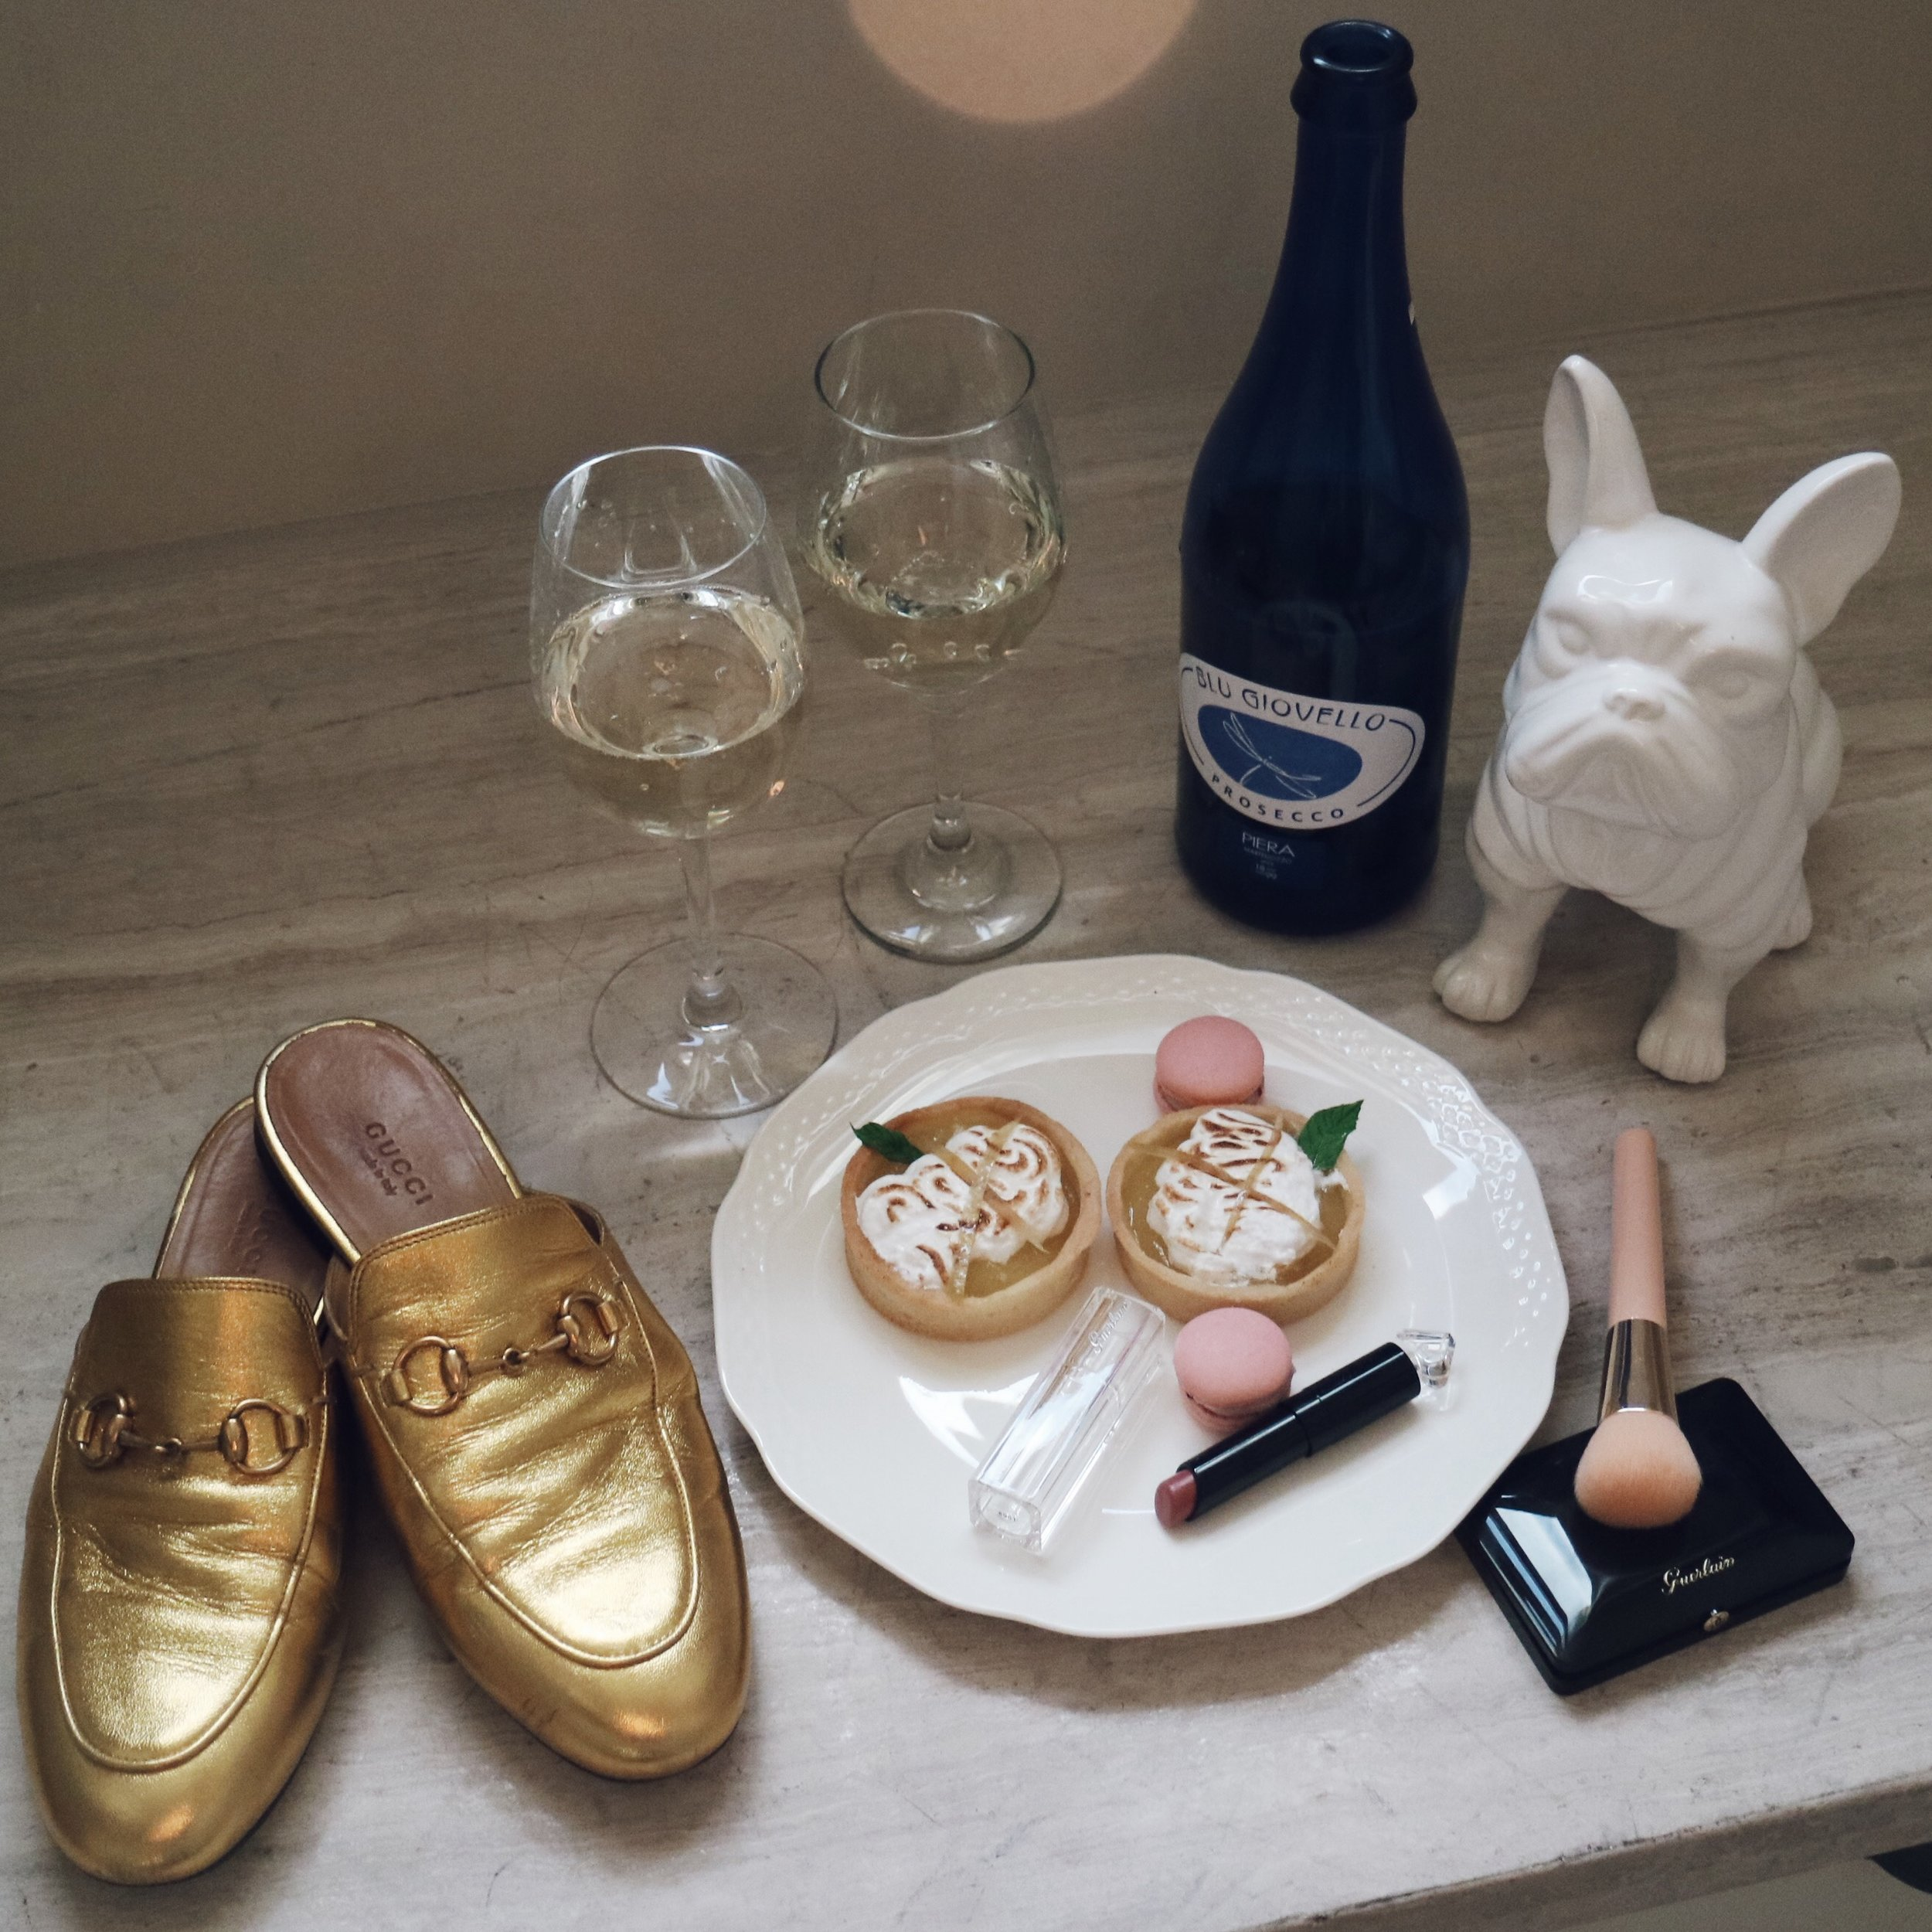 Gold Gucci Slippers Style Review - WoahStyle.com_0706.JPG